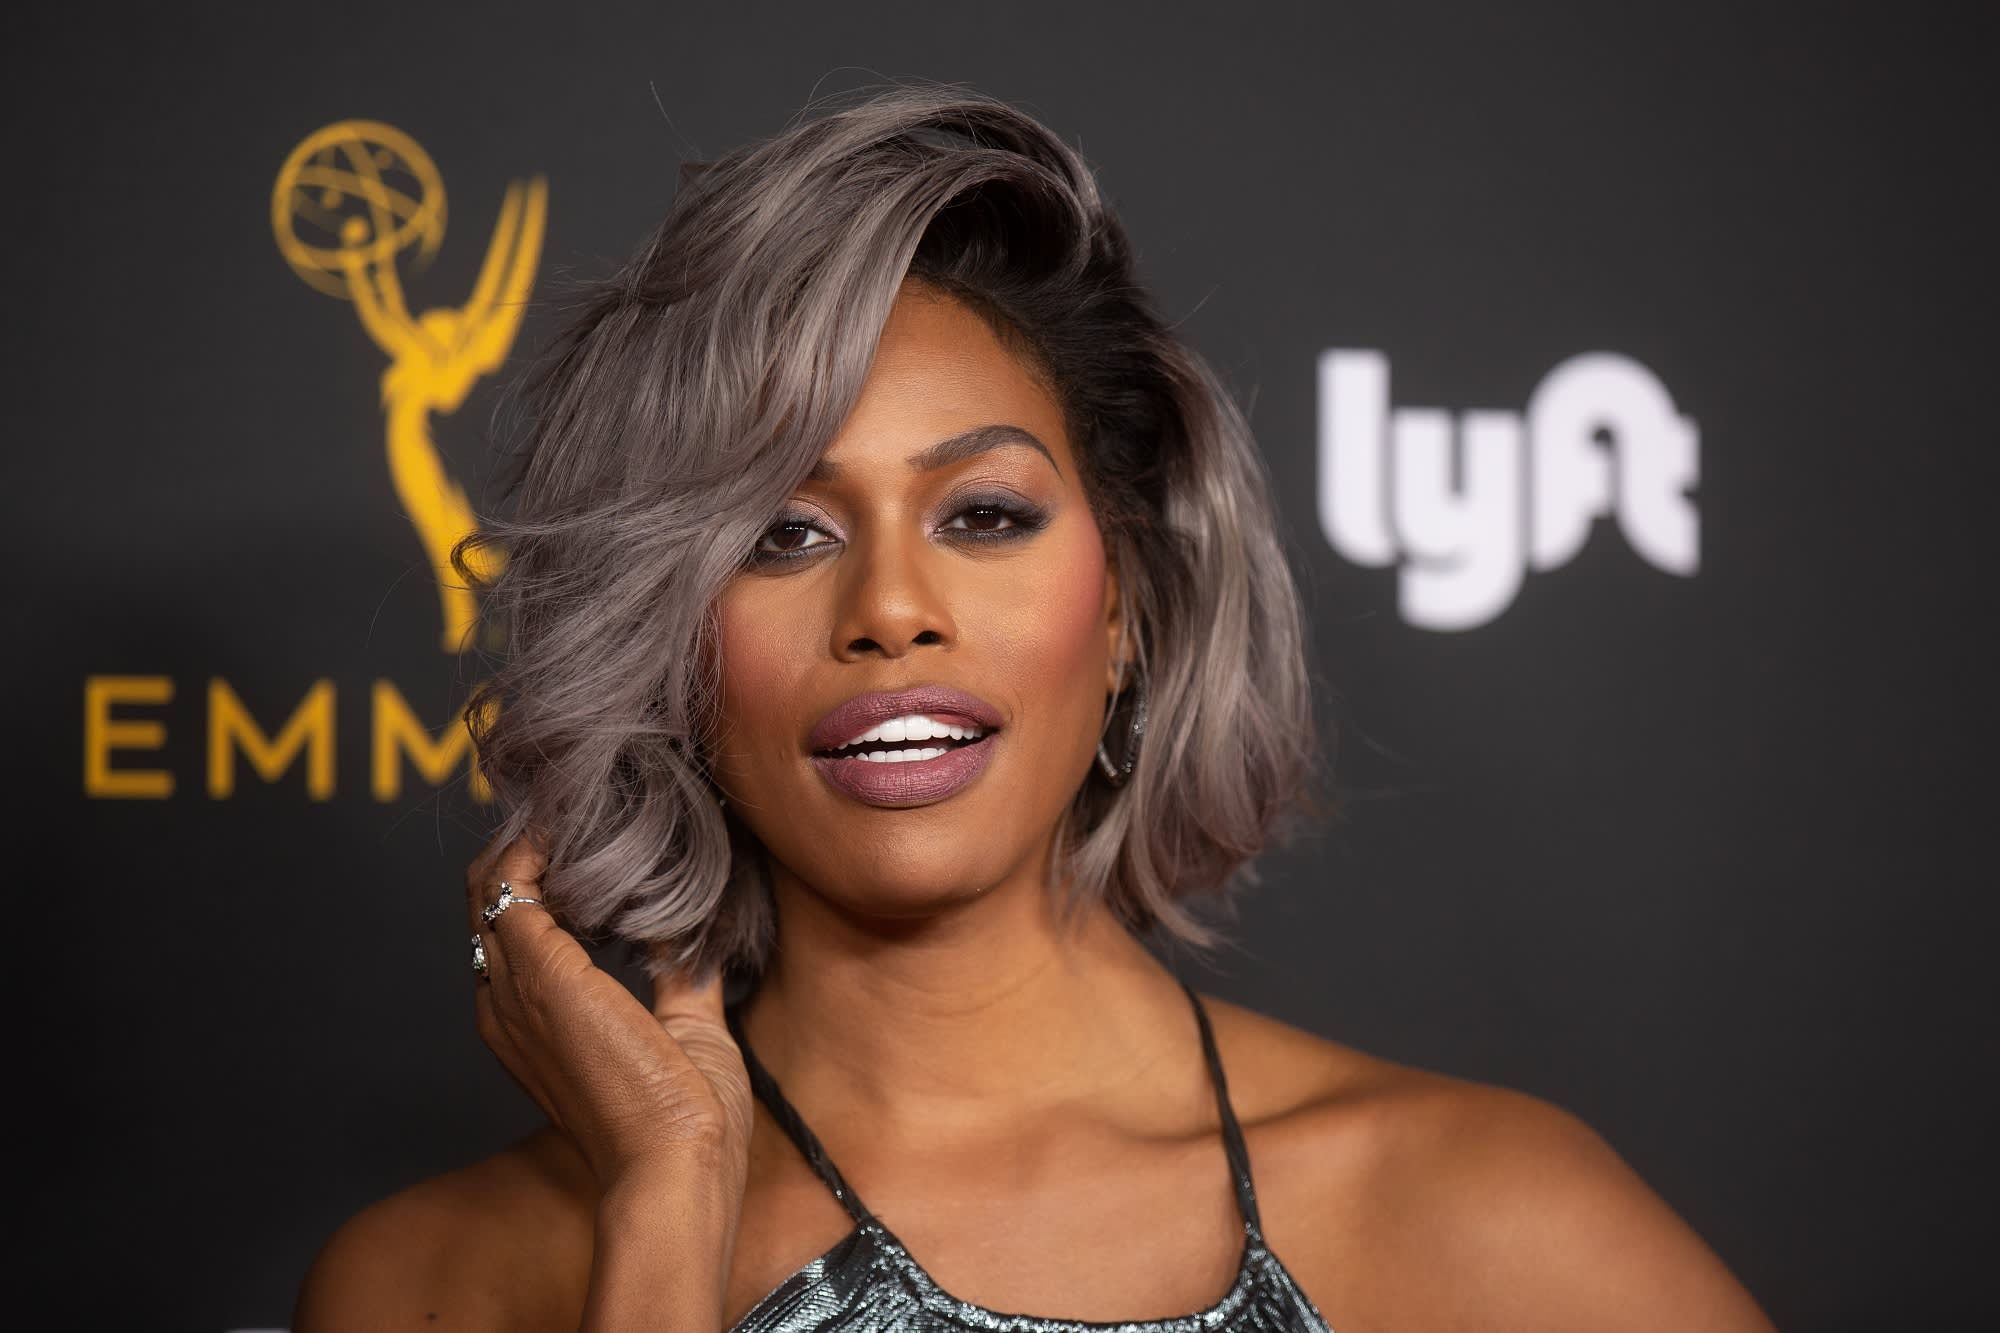 The best career advice Laverne Cox ever received —and what she tells others